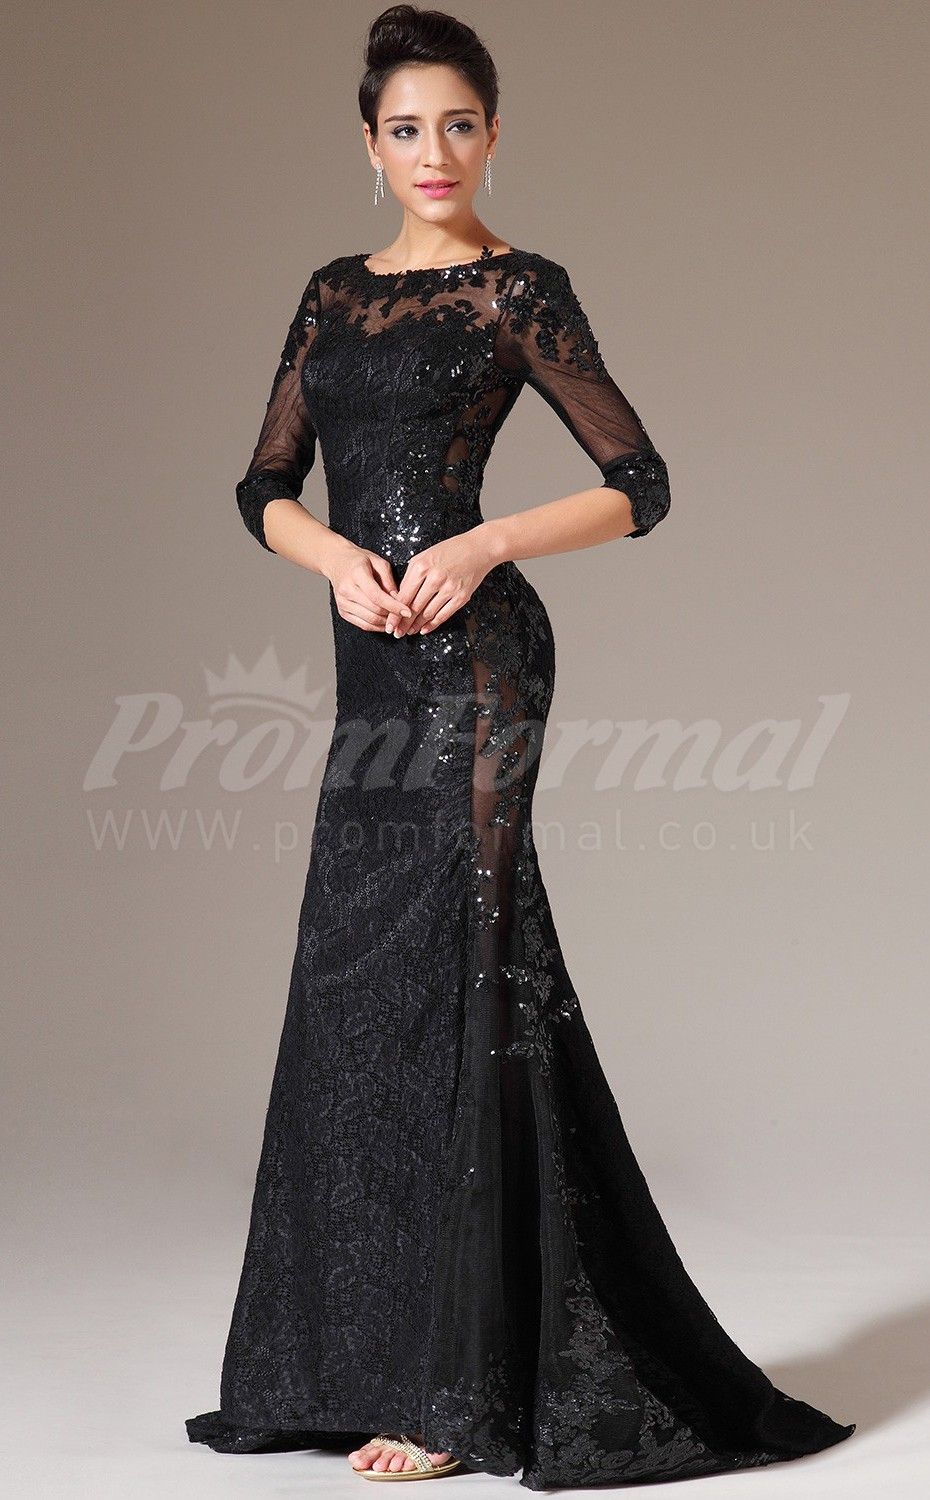 Black Lace Prom Dresses:Black Lace Mermaid Long Prom Dress with ...